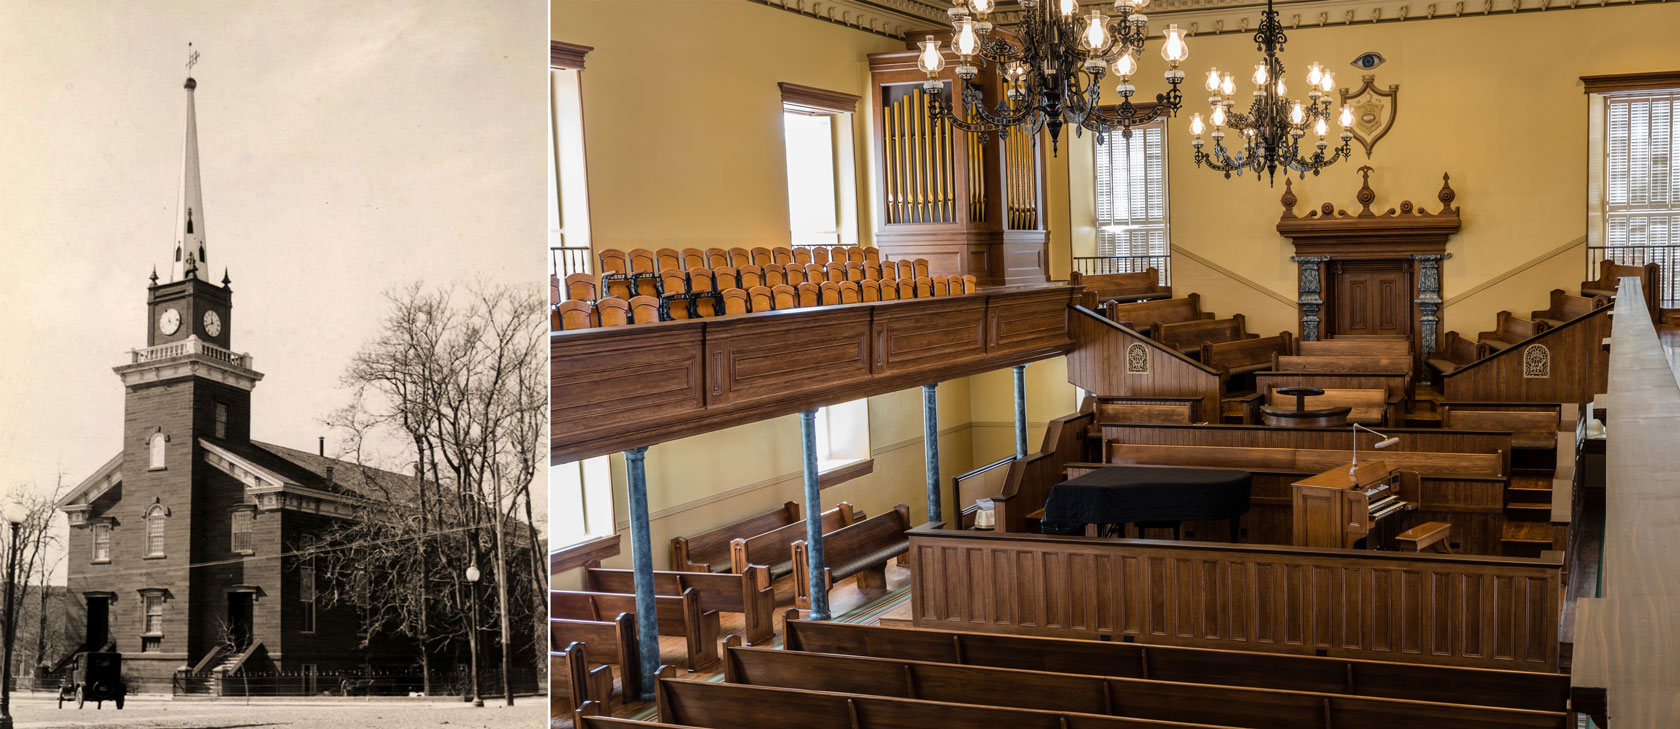 Pine Valley: More than a Chapel